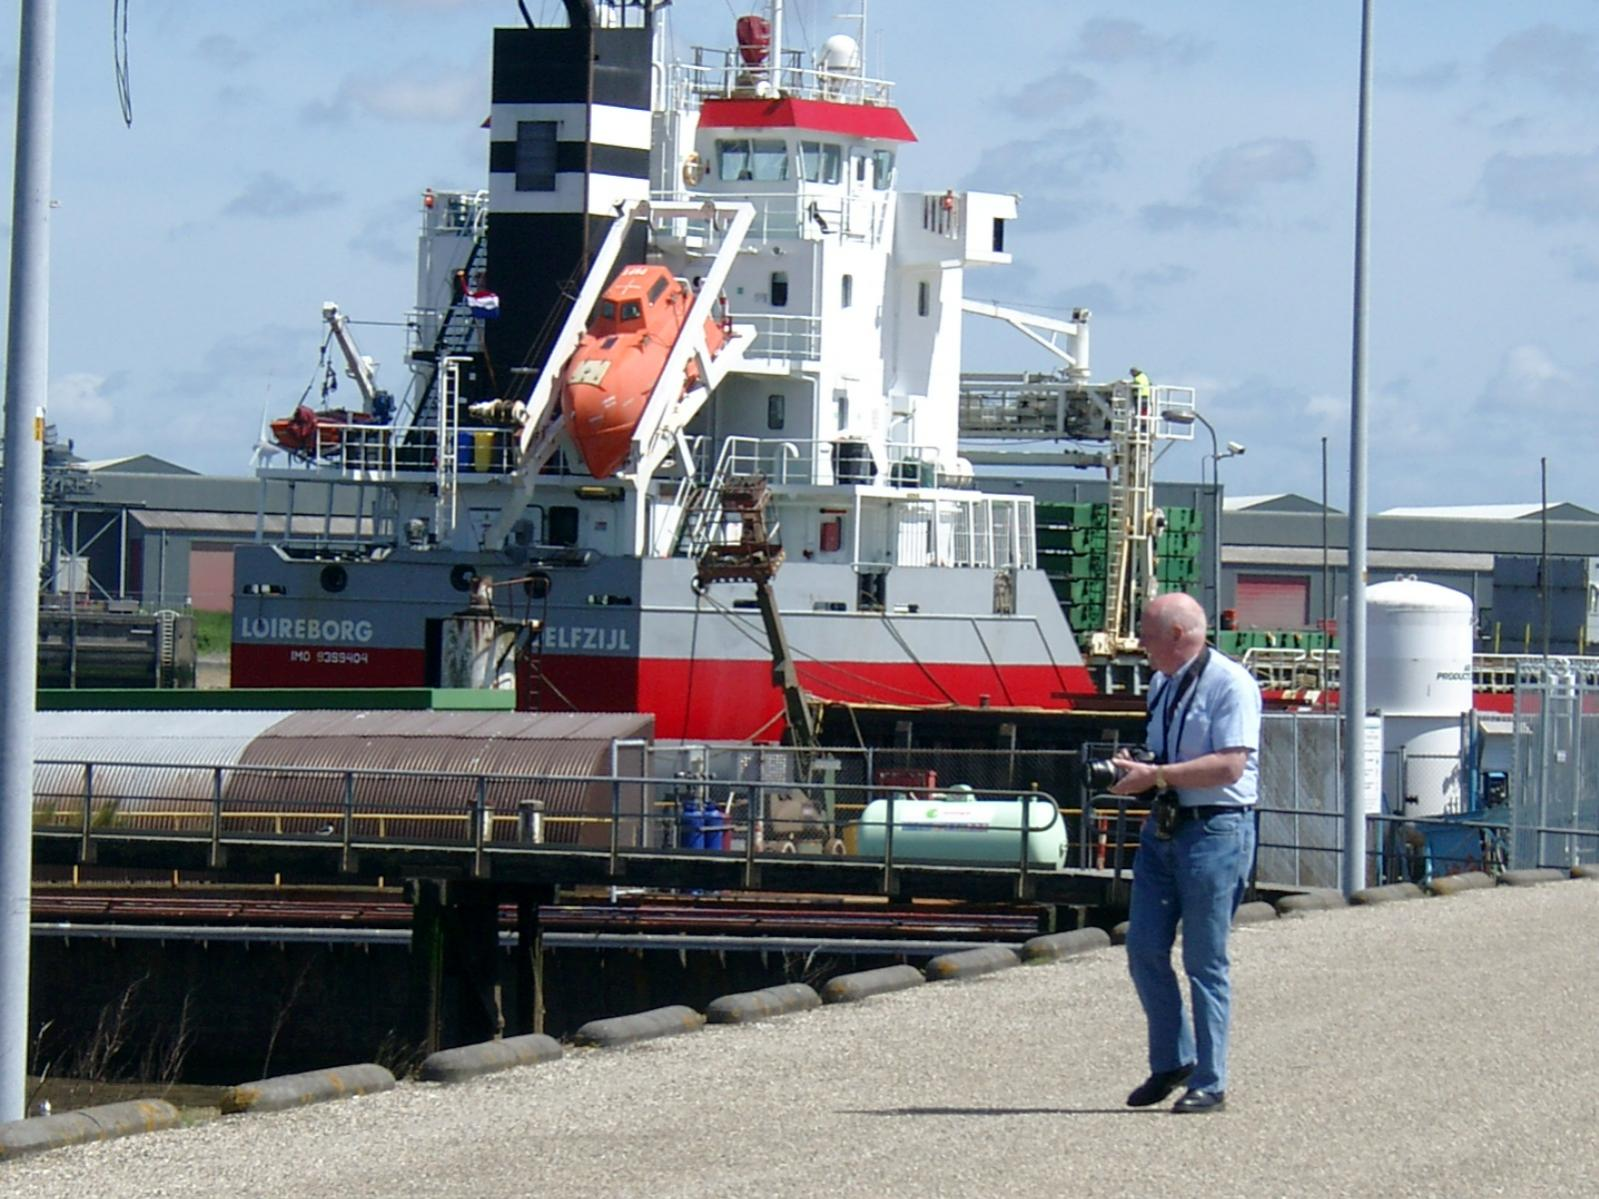 Click image for larger version  Name:NL 020613 Delfzijl spotter.jpg Views:323 Size:235.3 KB ID:1320